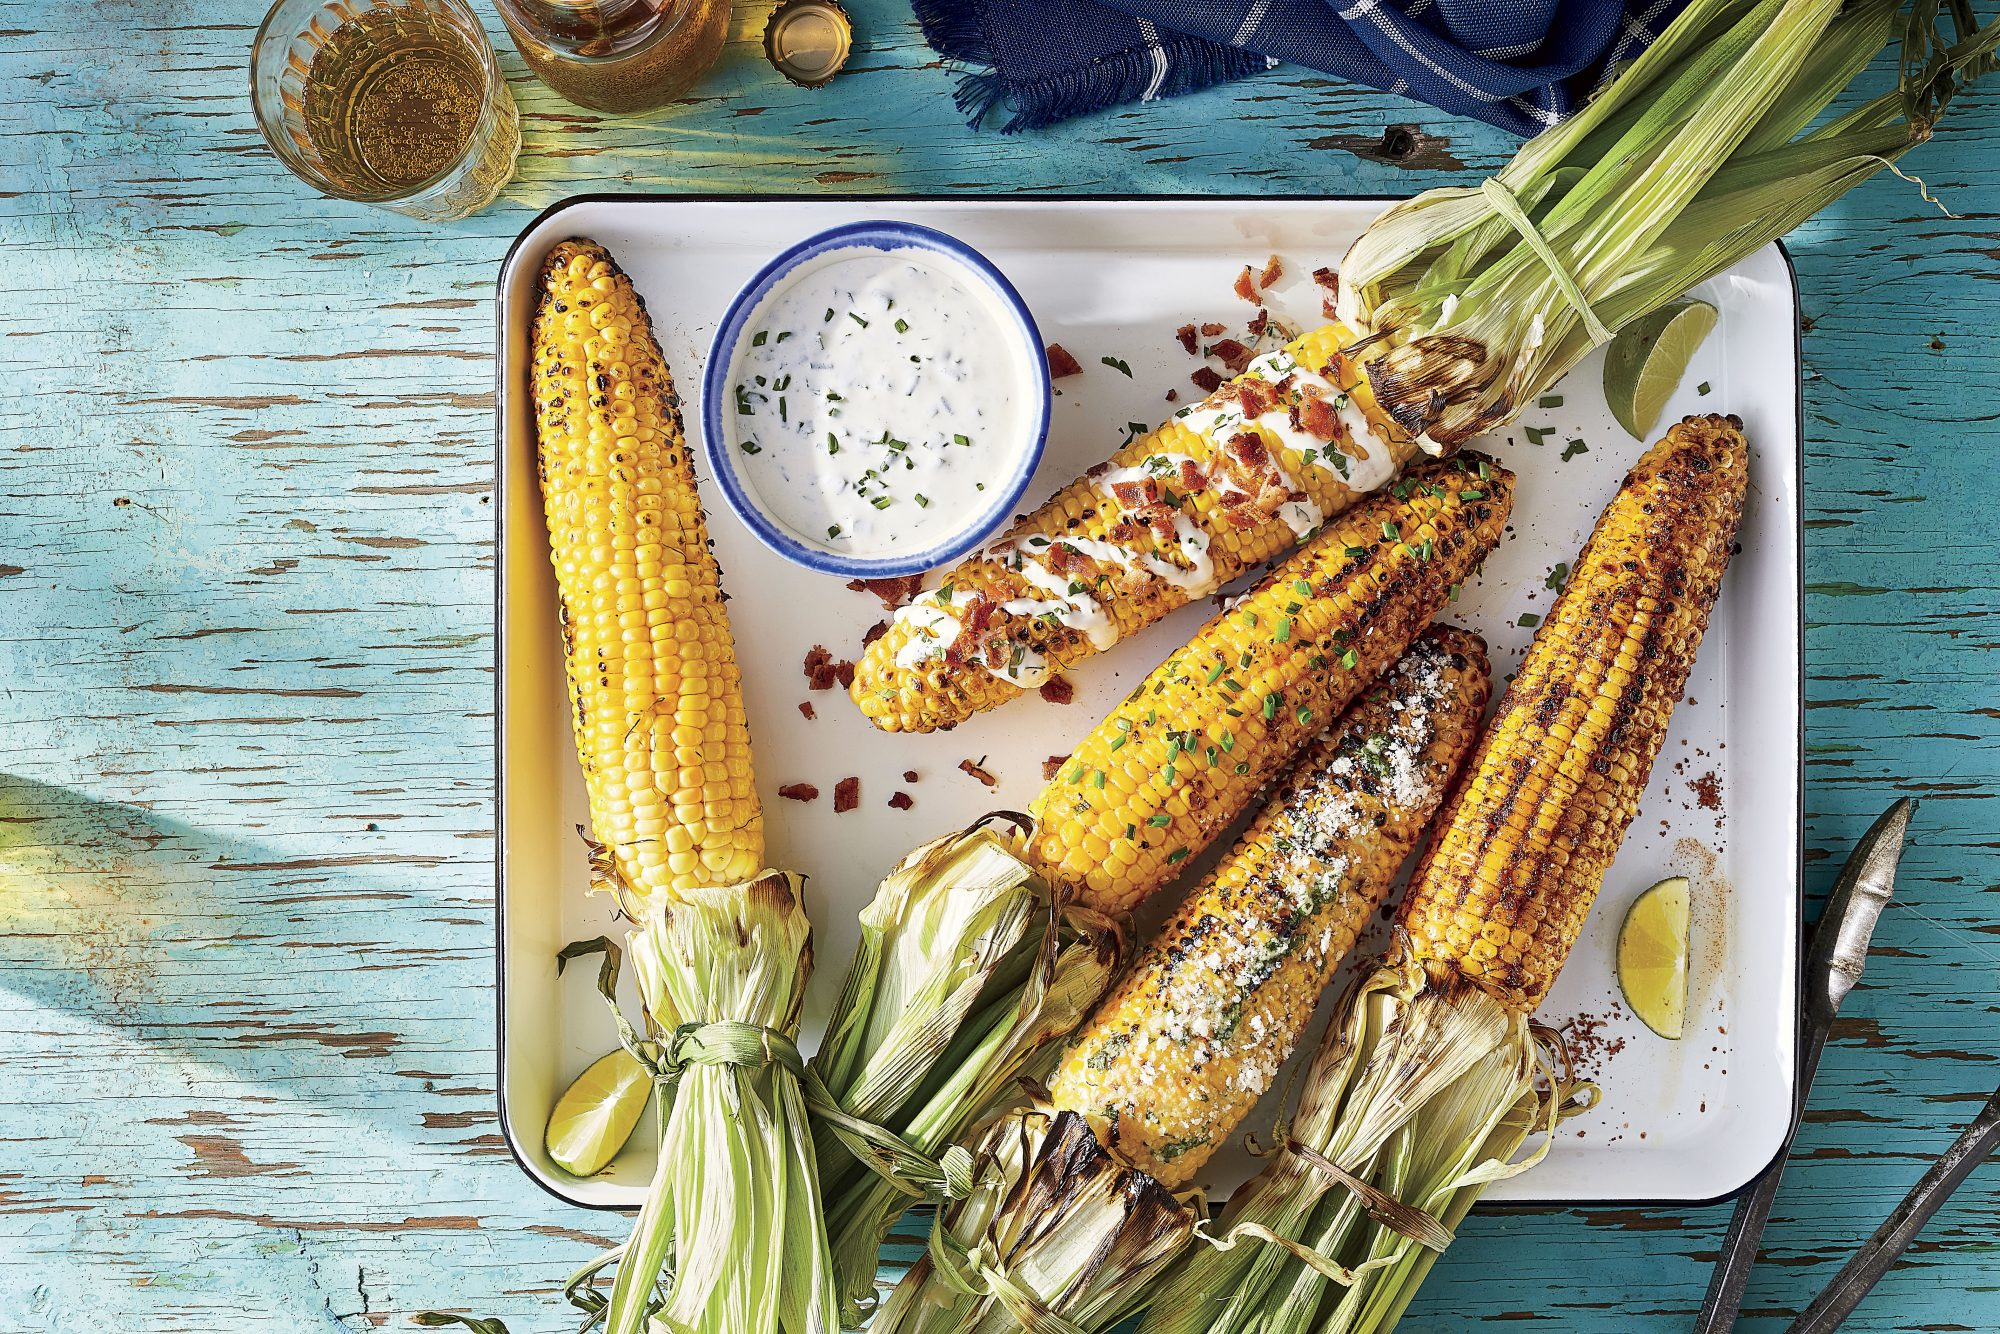 Classic Grilled Corn on the Cob Adam Hickman